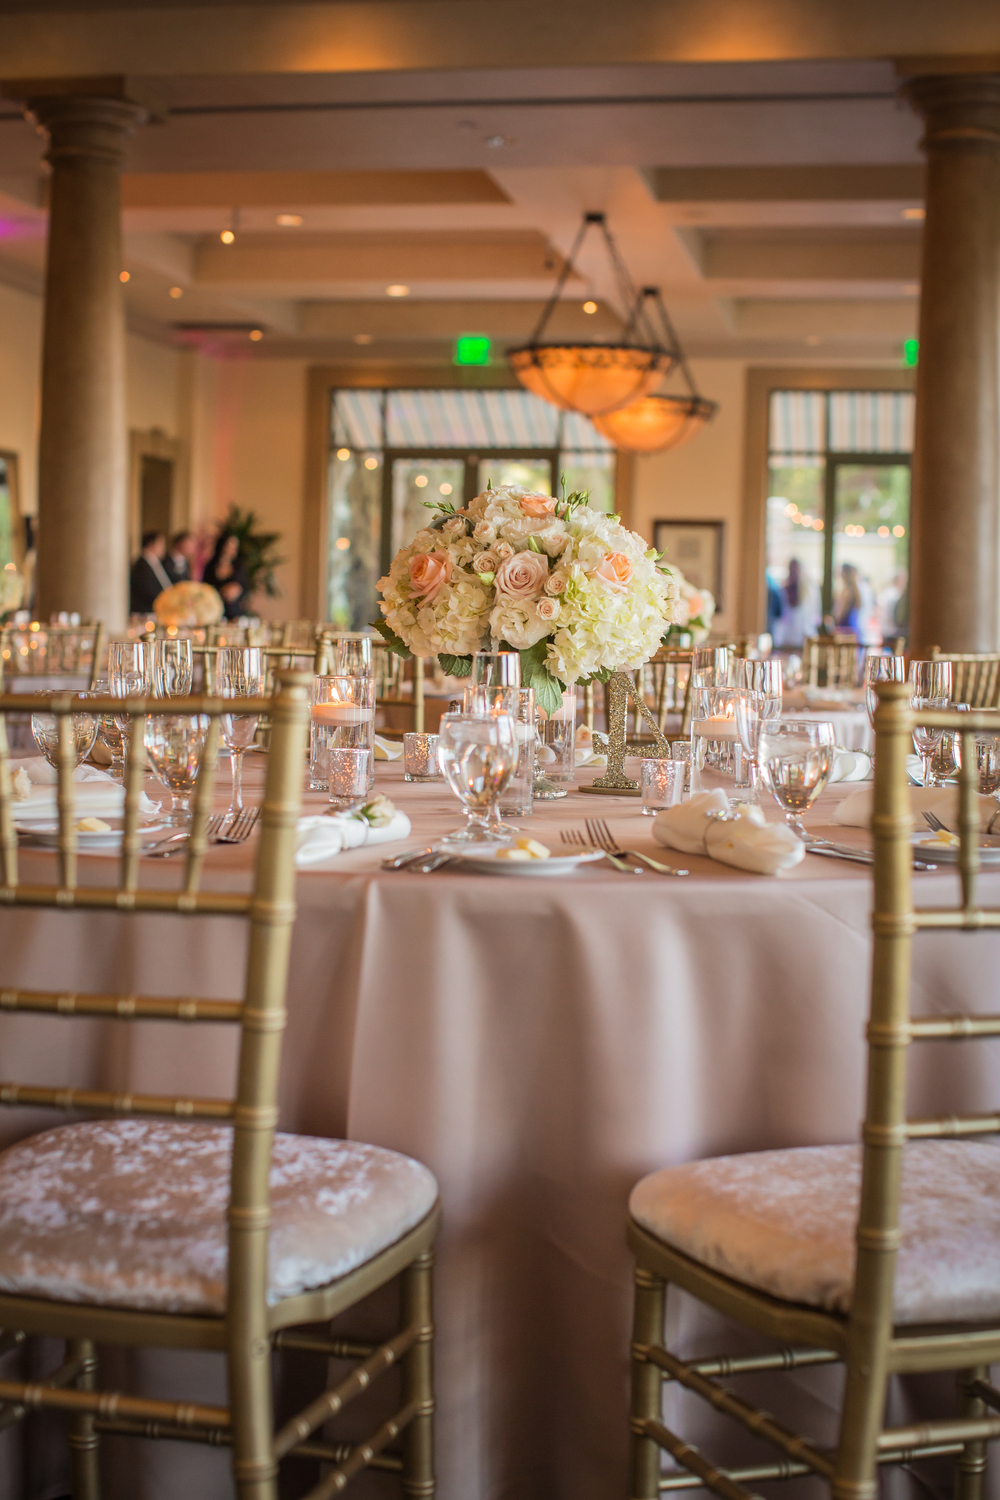 Gold Chiavari Chairs, crushed velvet seat cushions, and blush linens created a neutral, romantic environment that allowed our peach roses to pop.  Las Vegas Wedding at Siena Golf Club  |  Photography by Ella Gagiano  | Floral and Decor by Naakiti Floral  |  Las Wedding Planner Andrea Eppolito